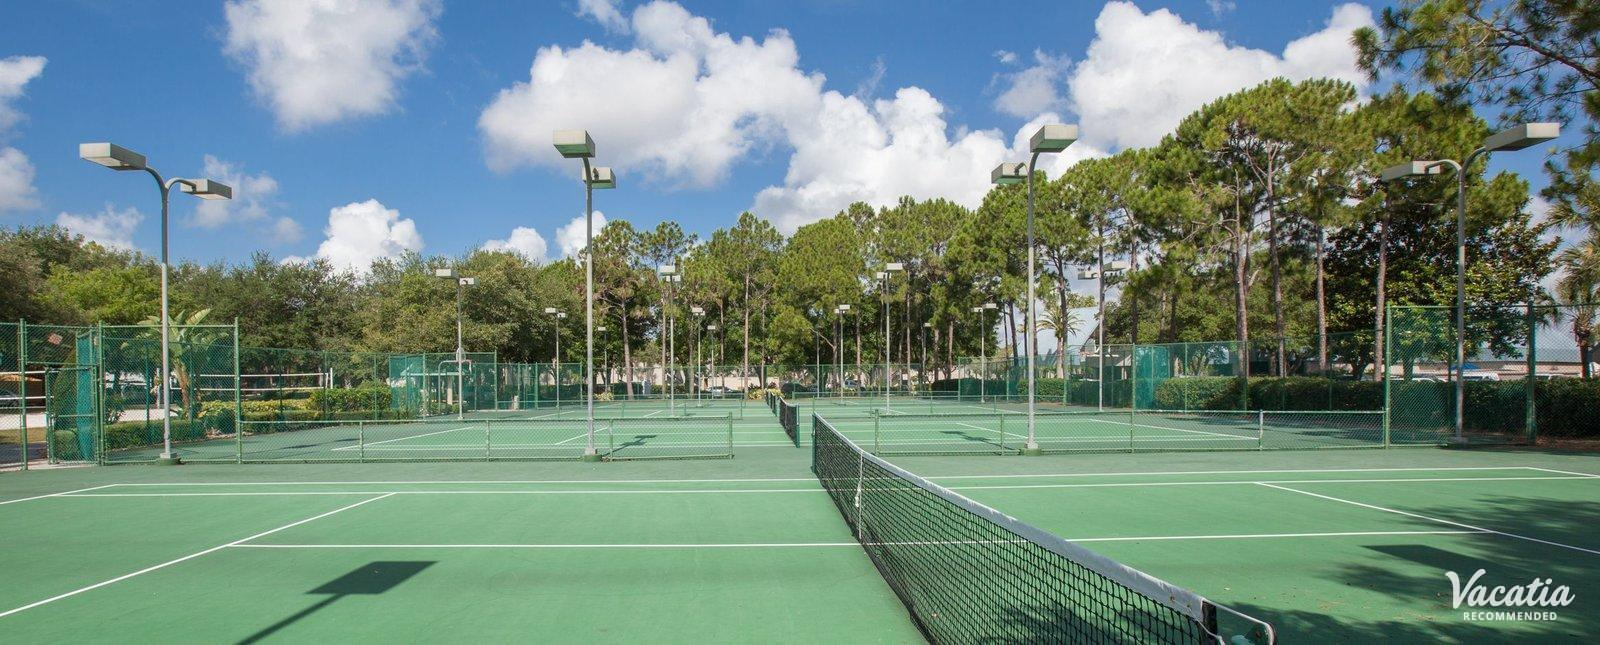 Marriott's Sabal Palms resort tennis courts